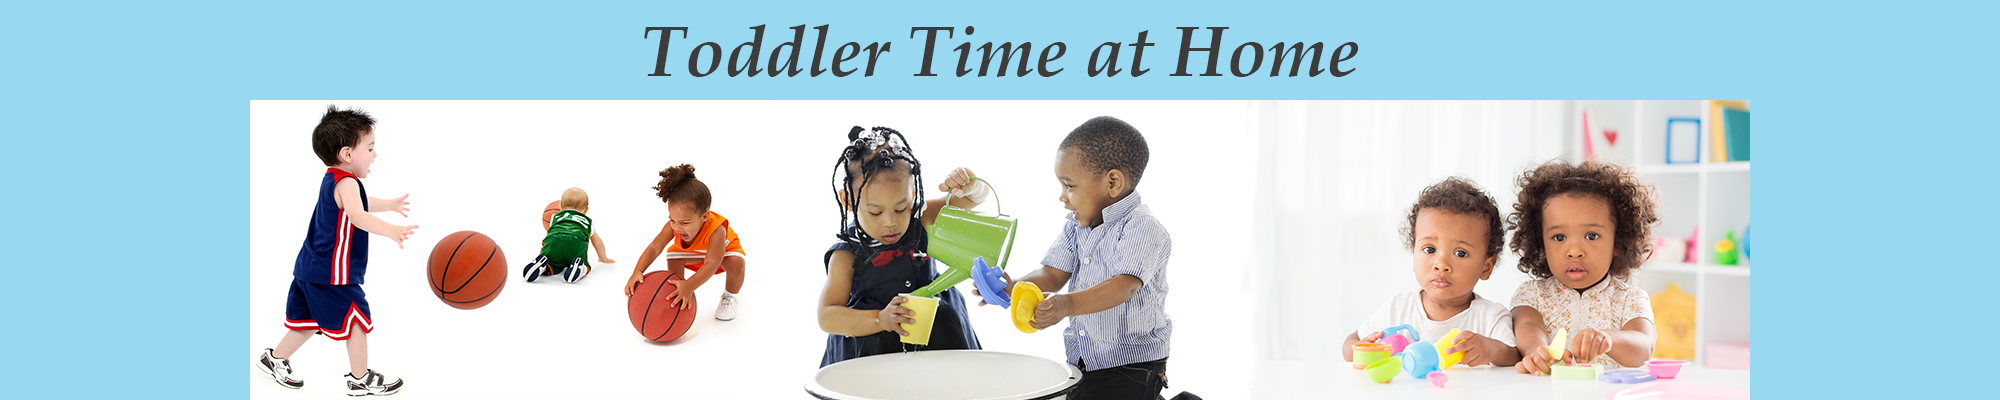 Toddler Time at Home image